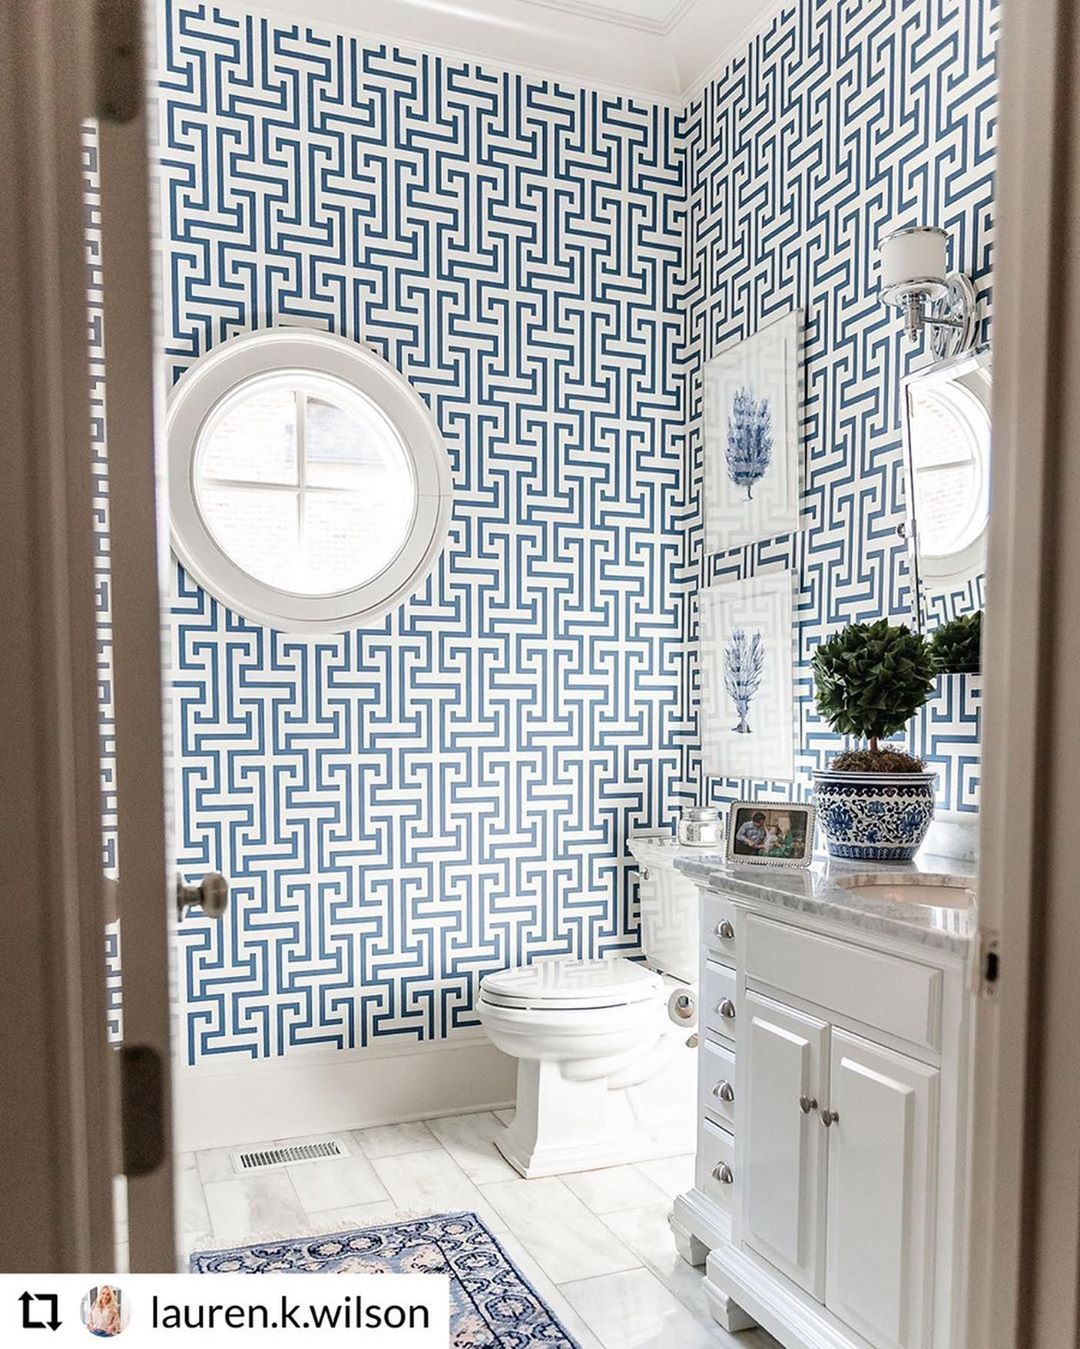 Thibaut On Instagram It S Amazing How Much Wallpaper Can Transform A Room Lauren K Wilson Thibaut Agrees Lauren Uses Our Ming Trail Wallpaper From Th